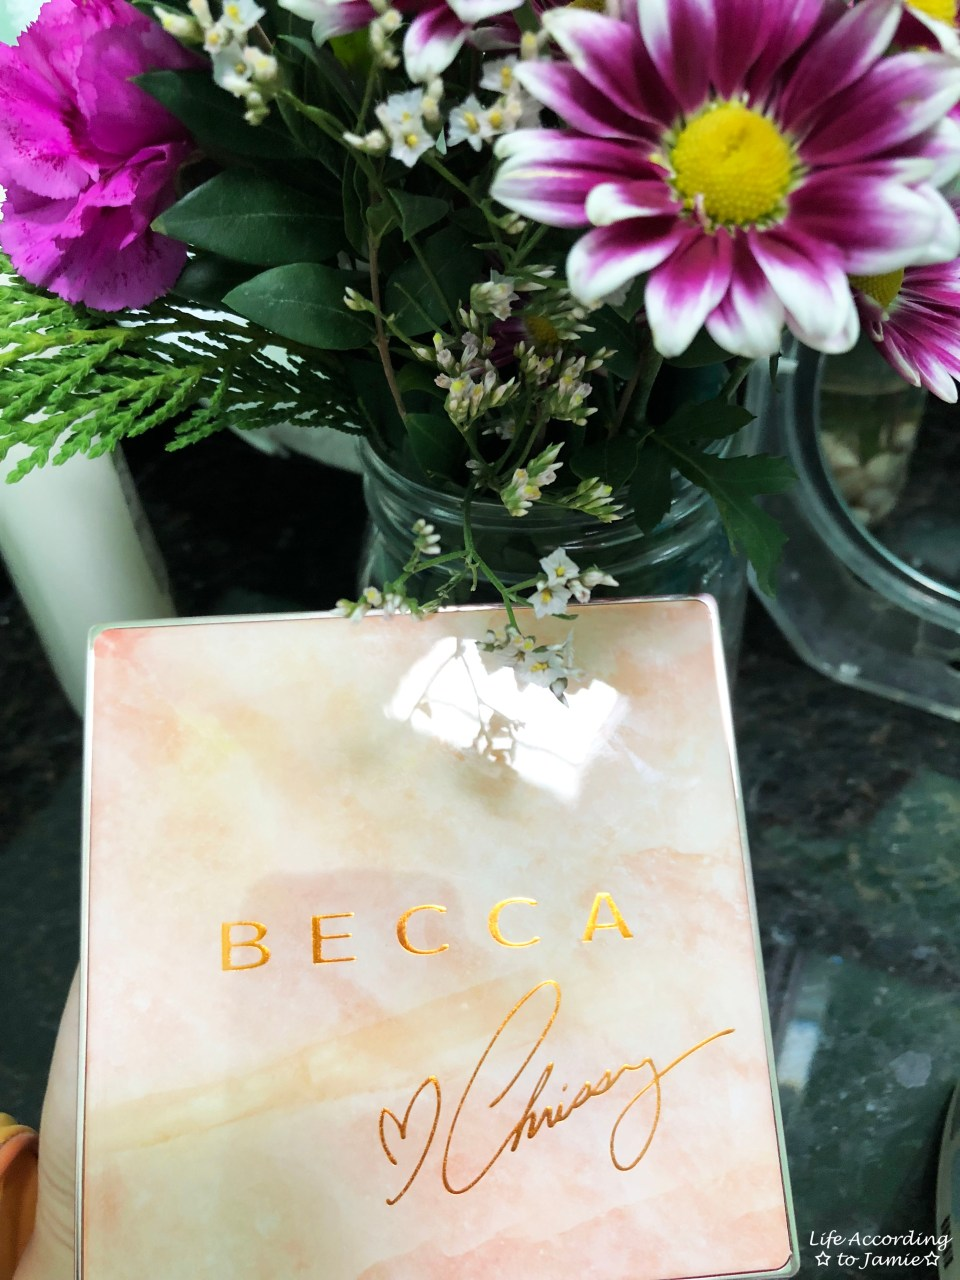 Becca x Chrissy - Glow Face Palette